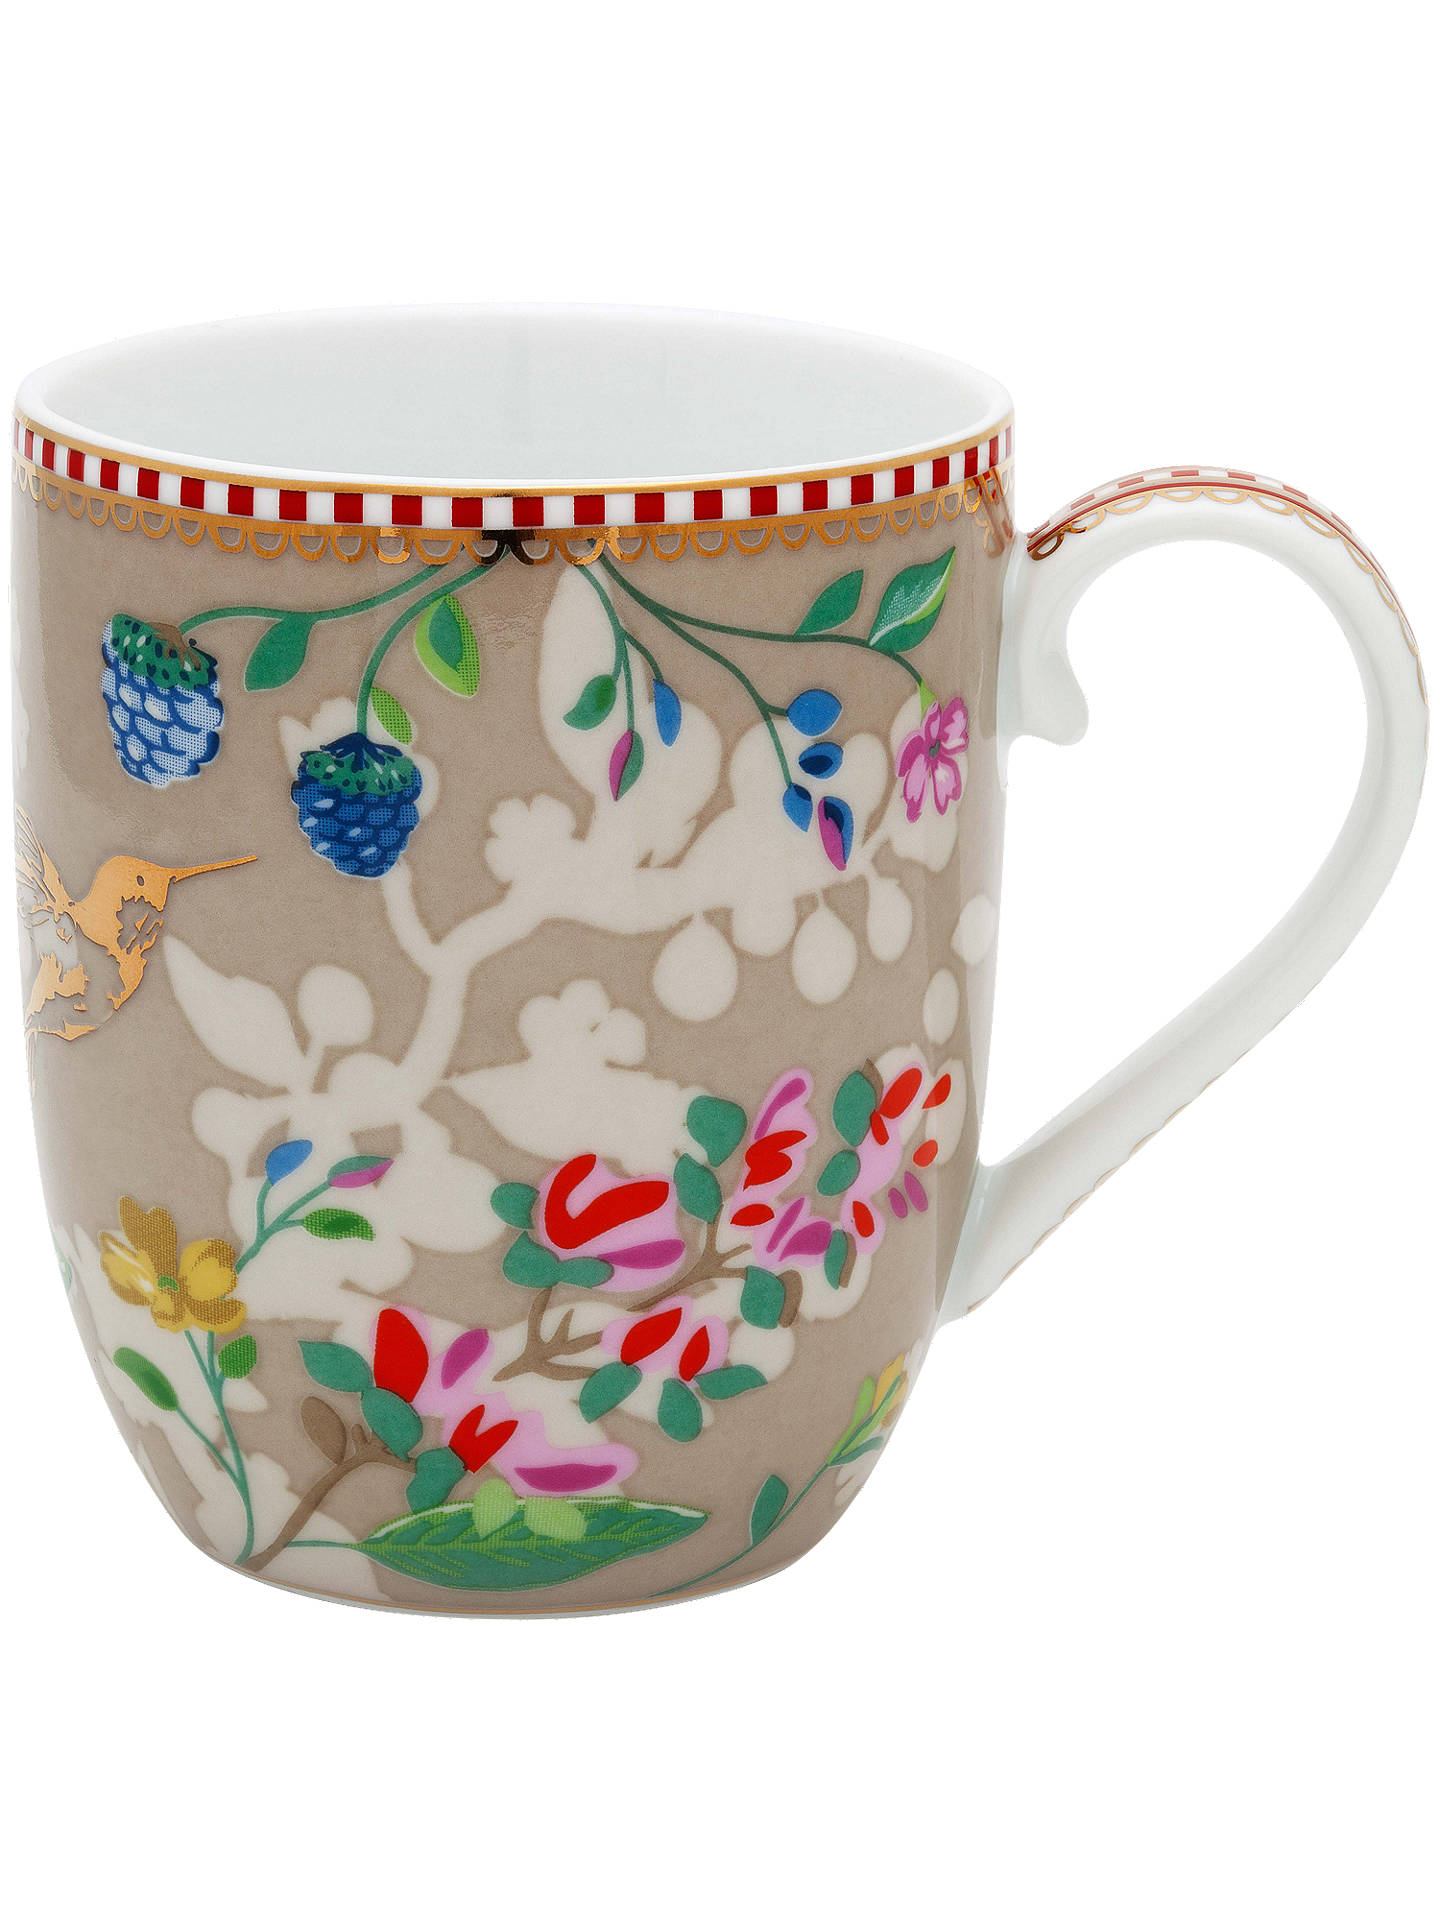 BuyPiP Studio Floral 2.0 Small Hummingbird Mug, 145ml, Khaki Online at johnlewis.com